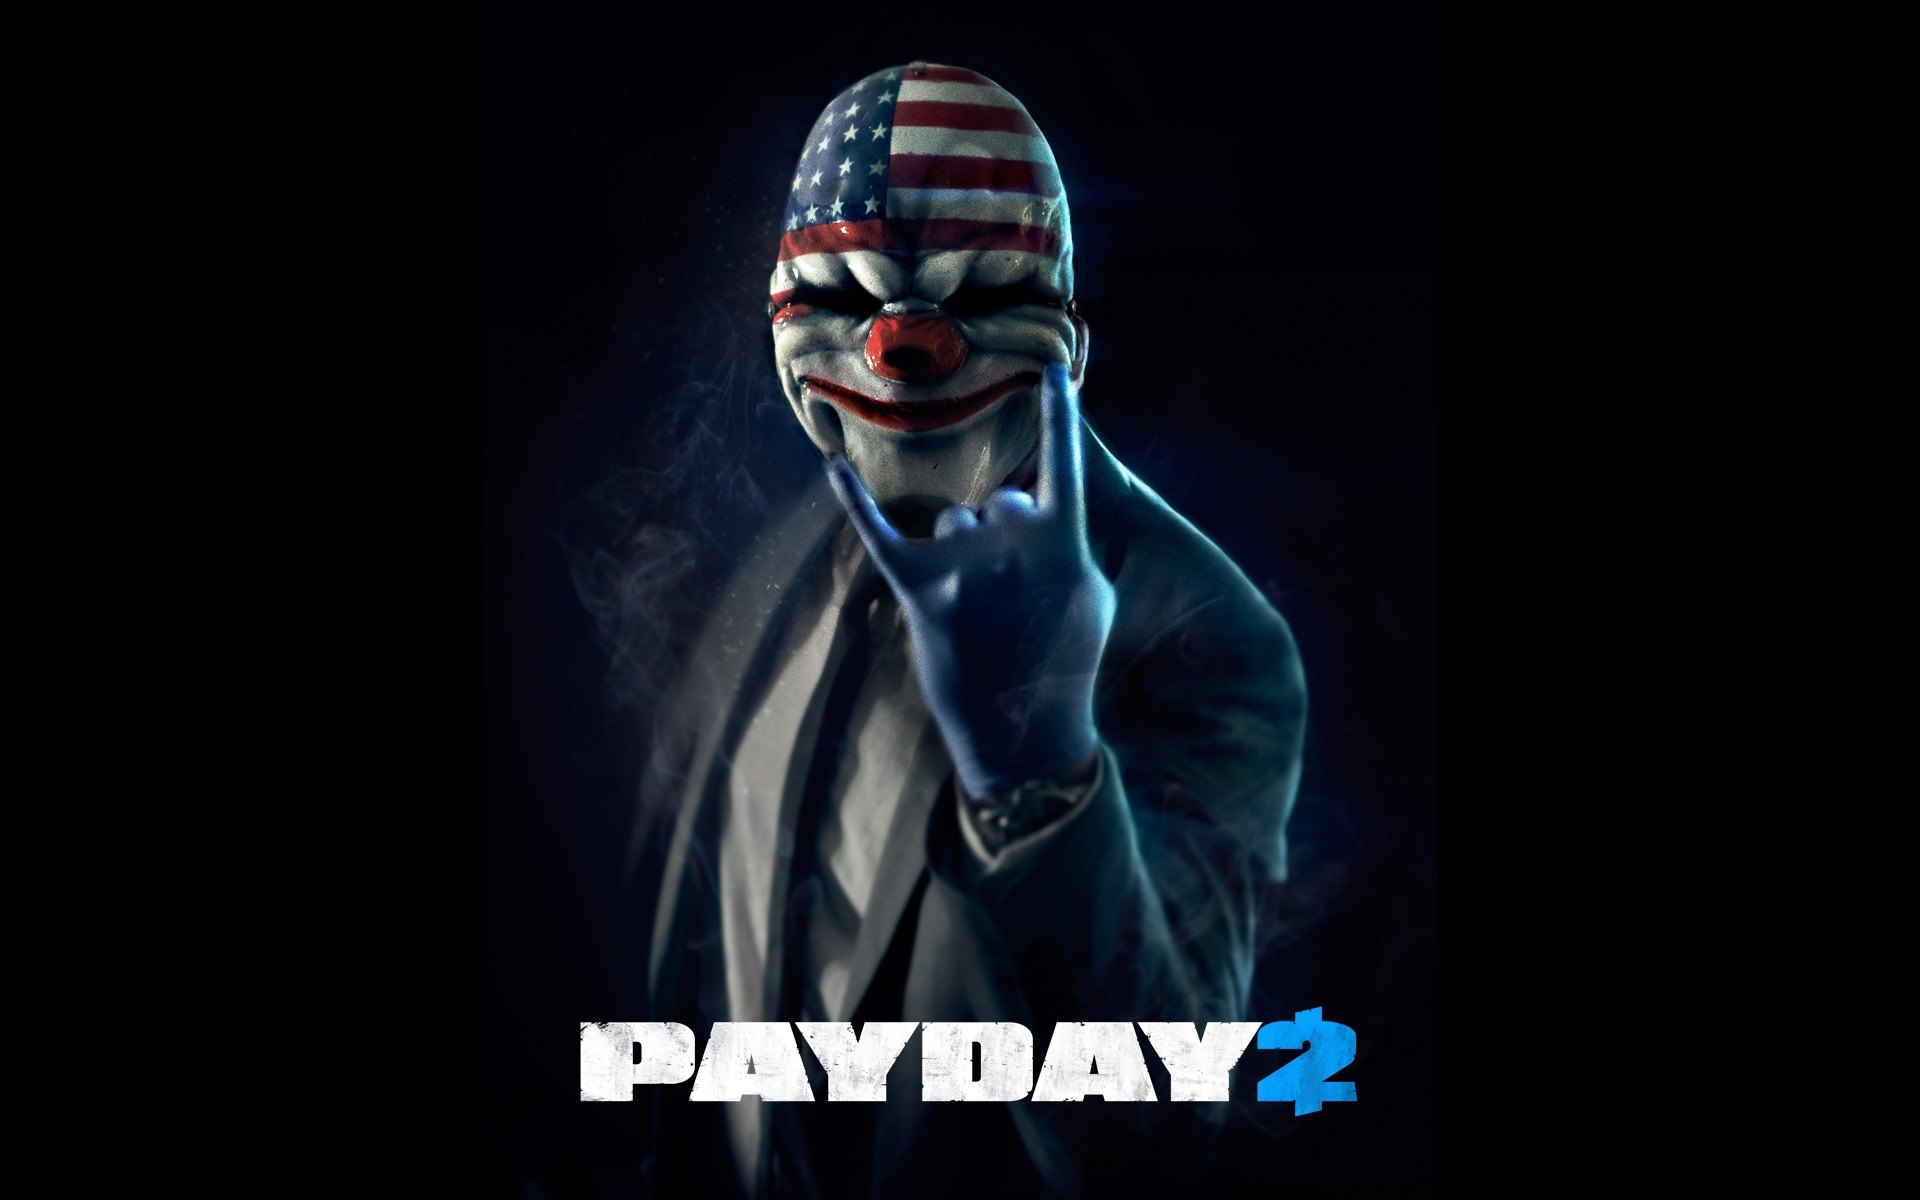 Payday 2 HD Wallpapers · 4K